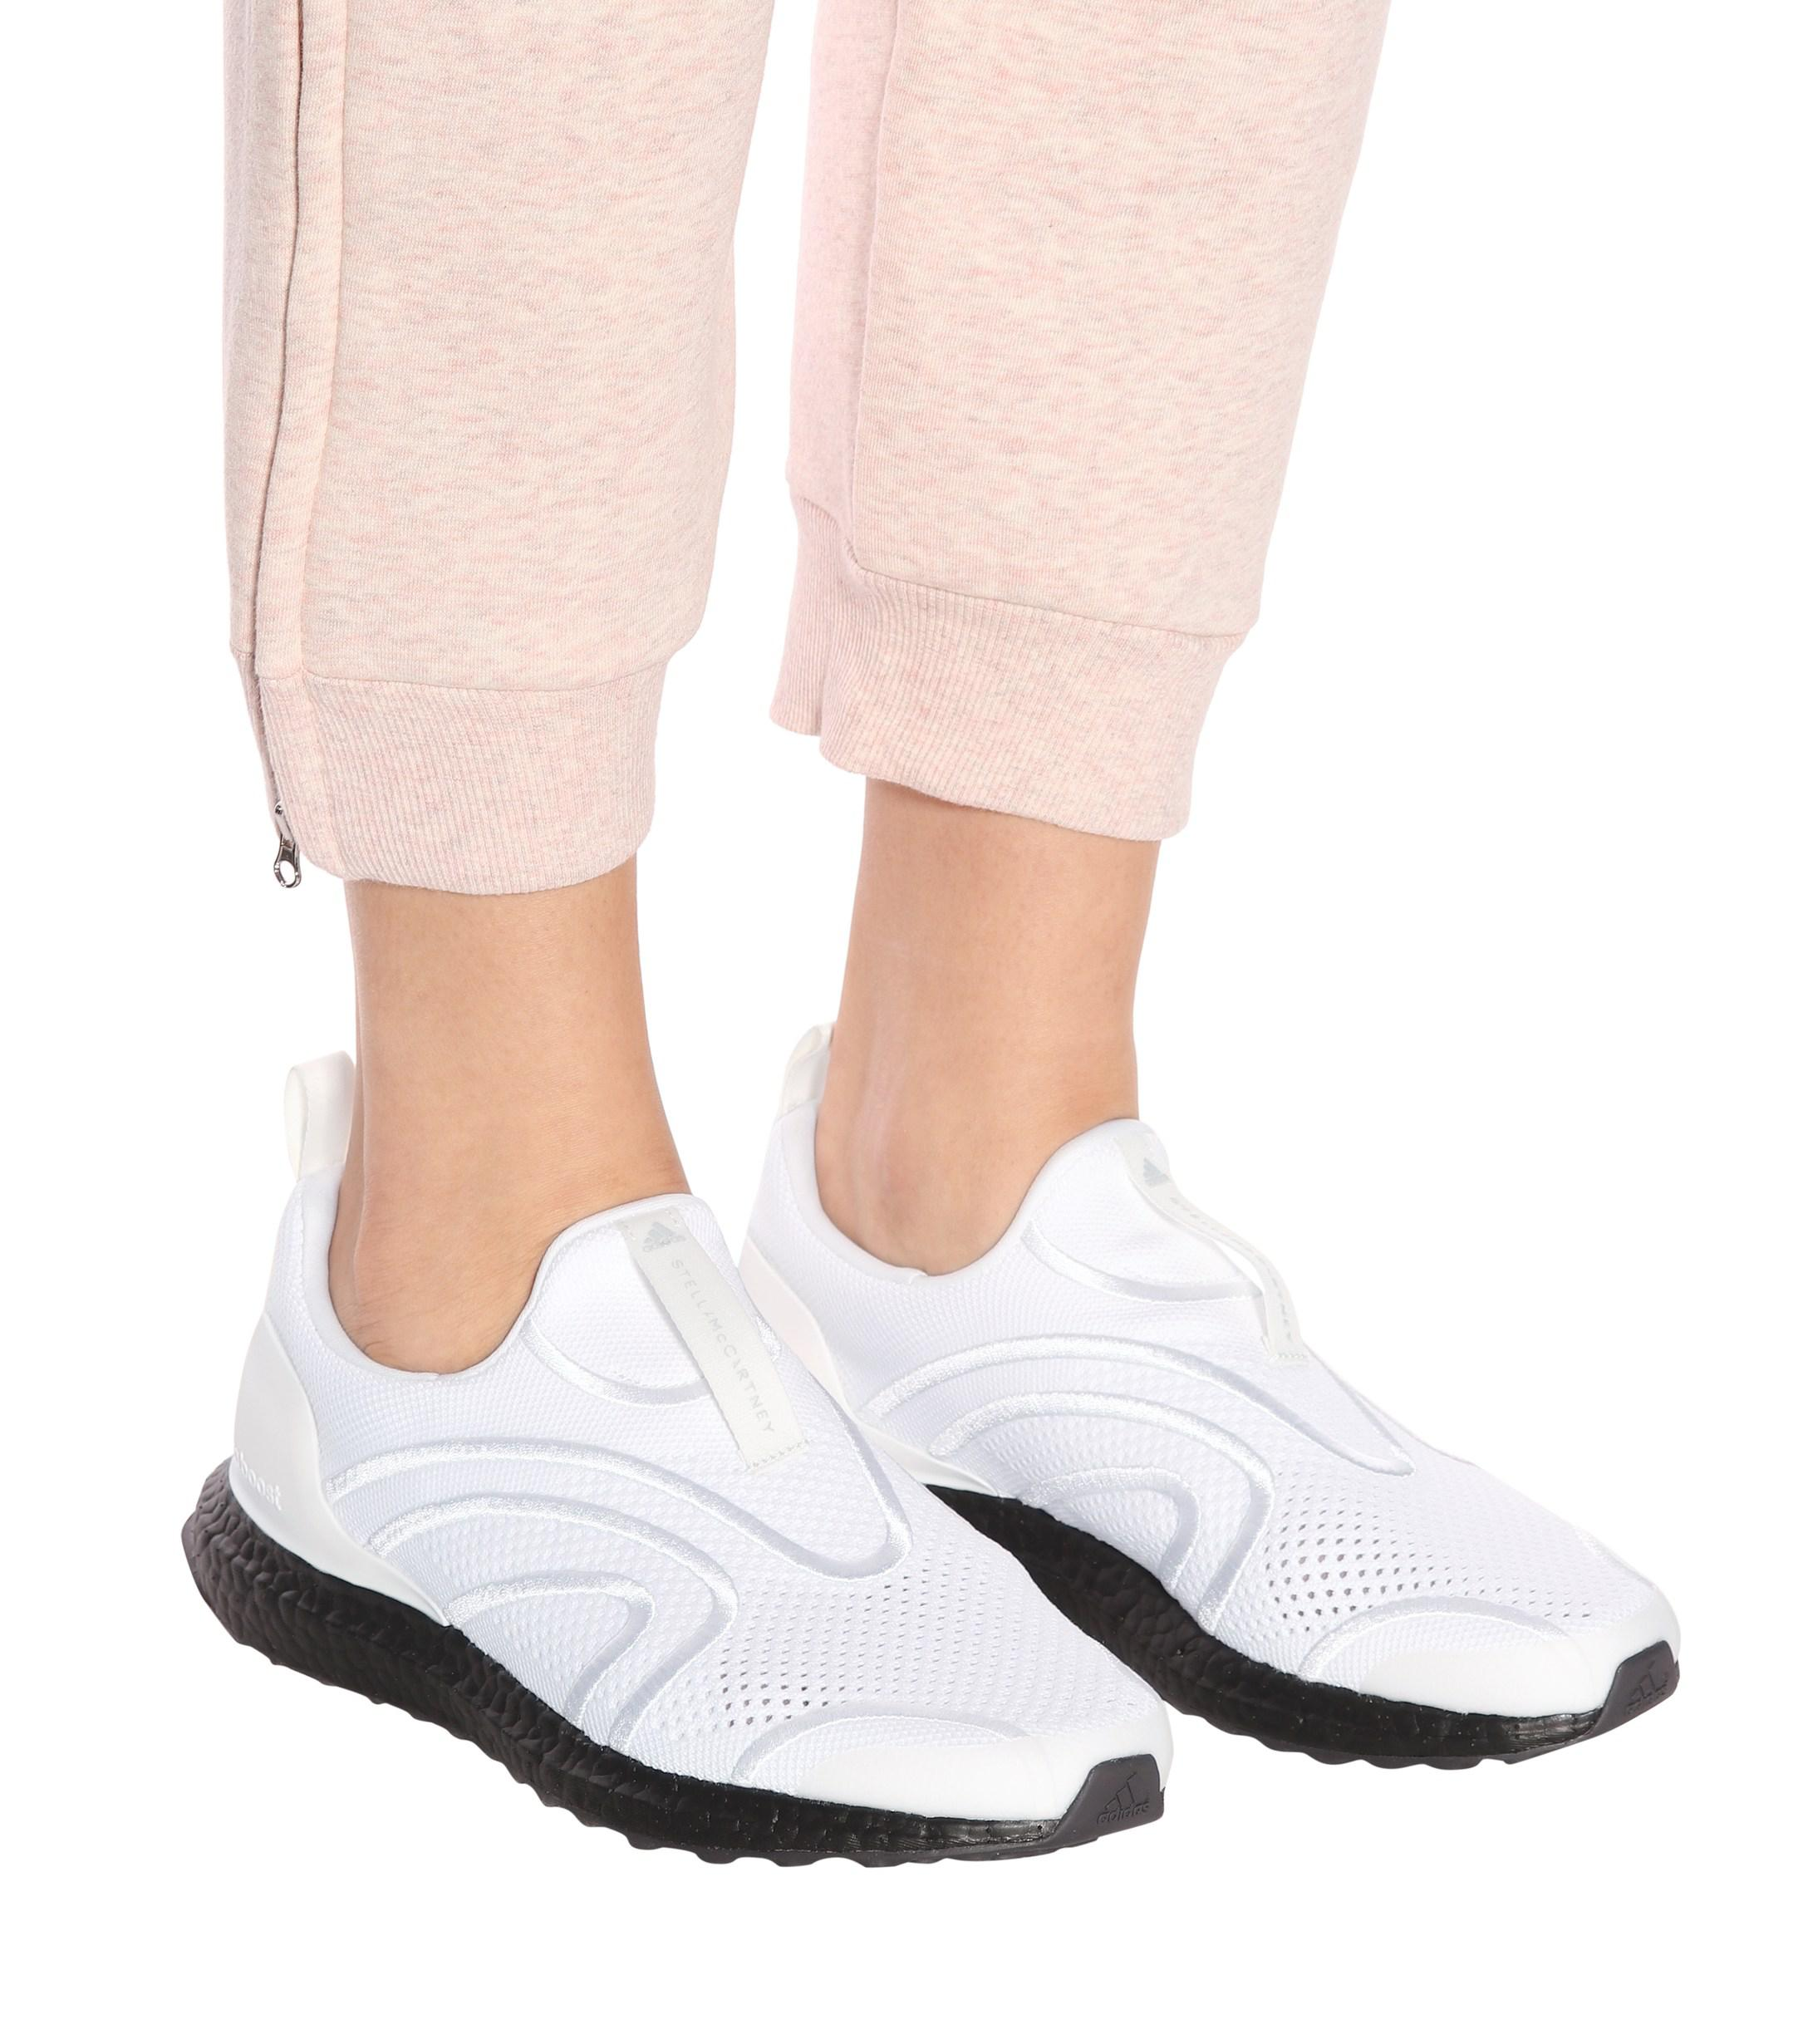 4e8763ee2 Adidas By Stella McCartney - White Ultra Boost Uncaged Sneakers - Lyst.  View fullscreen